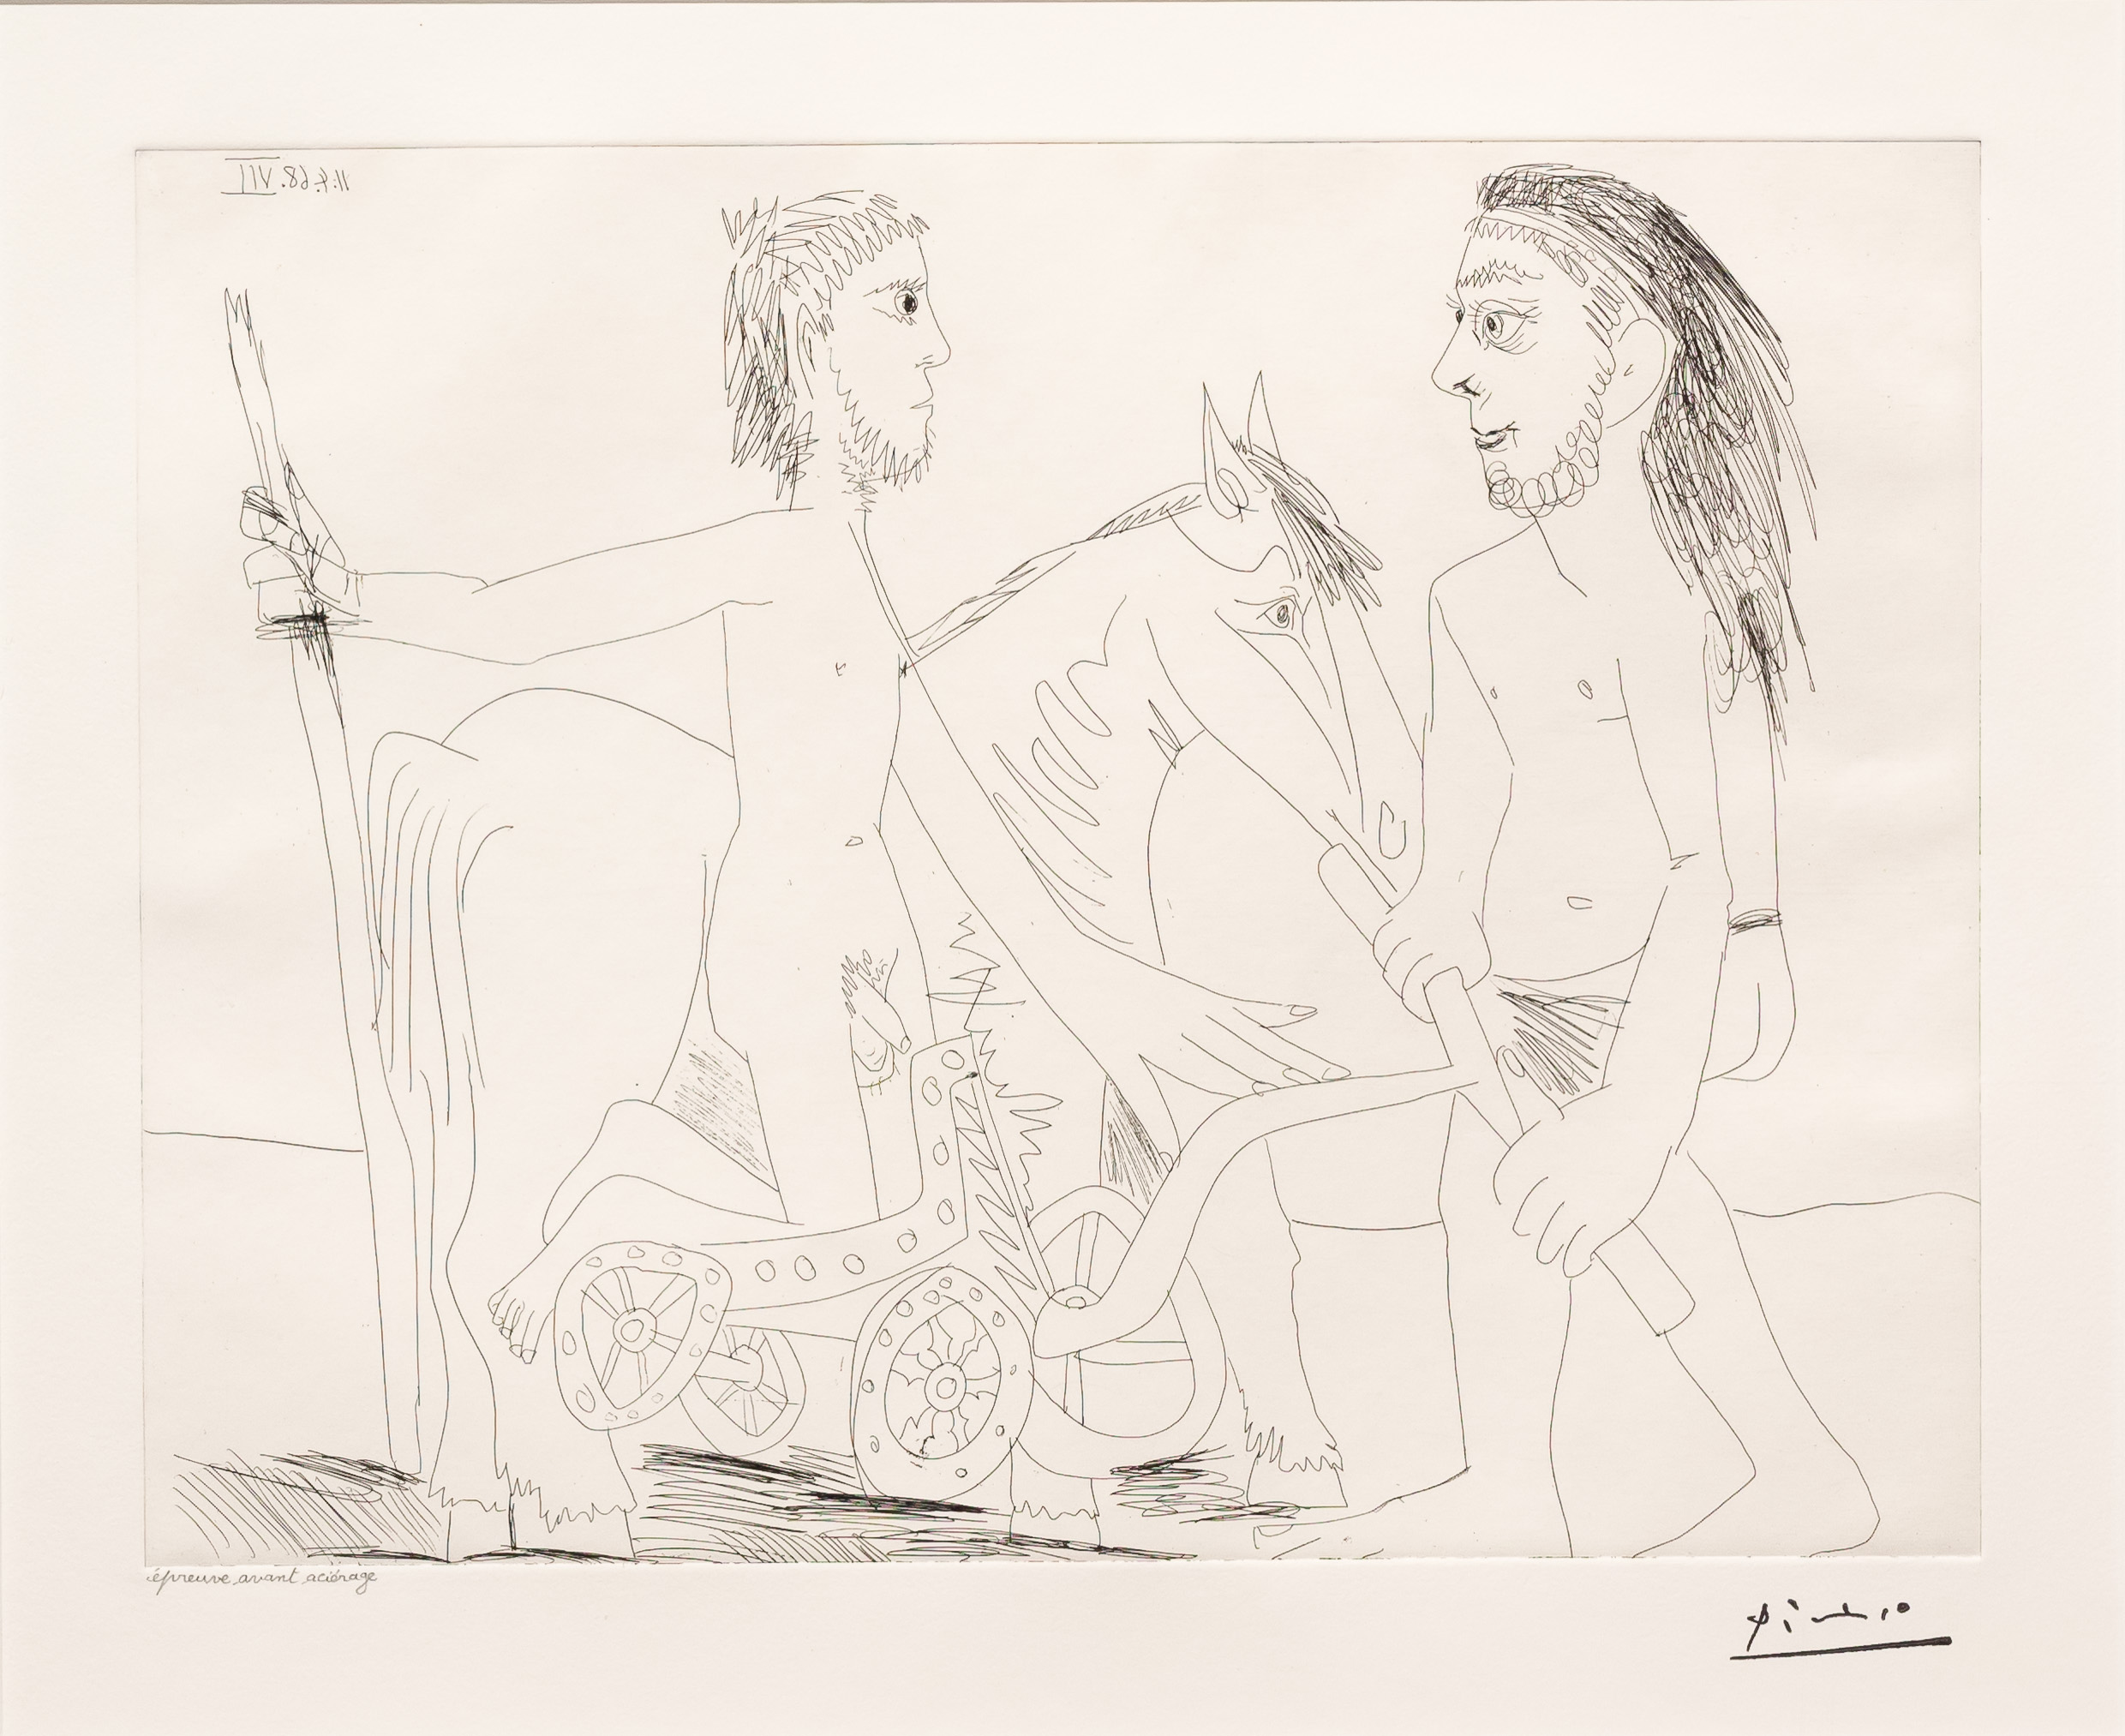 Television: Combat de Chars a l'Antique, from the 347 Series by Pablo Picasso